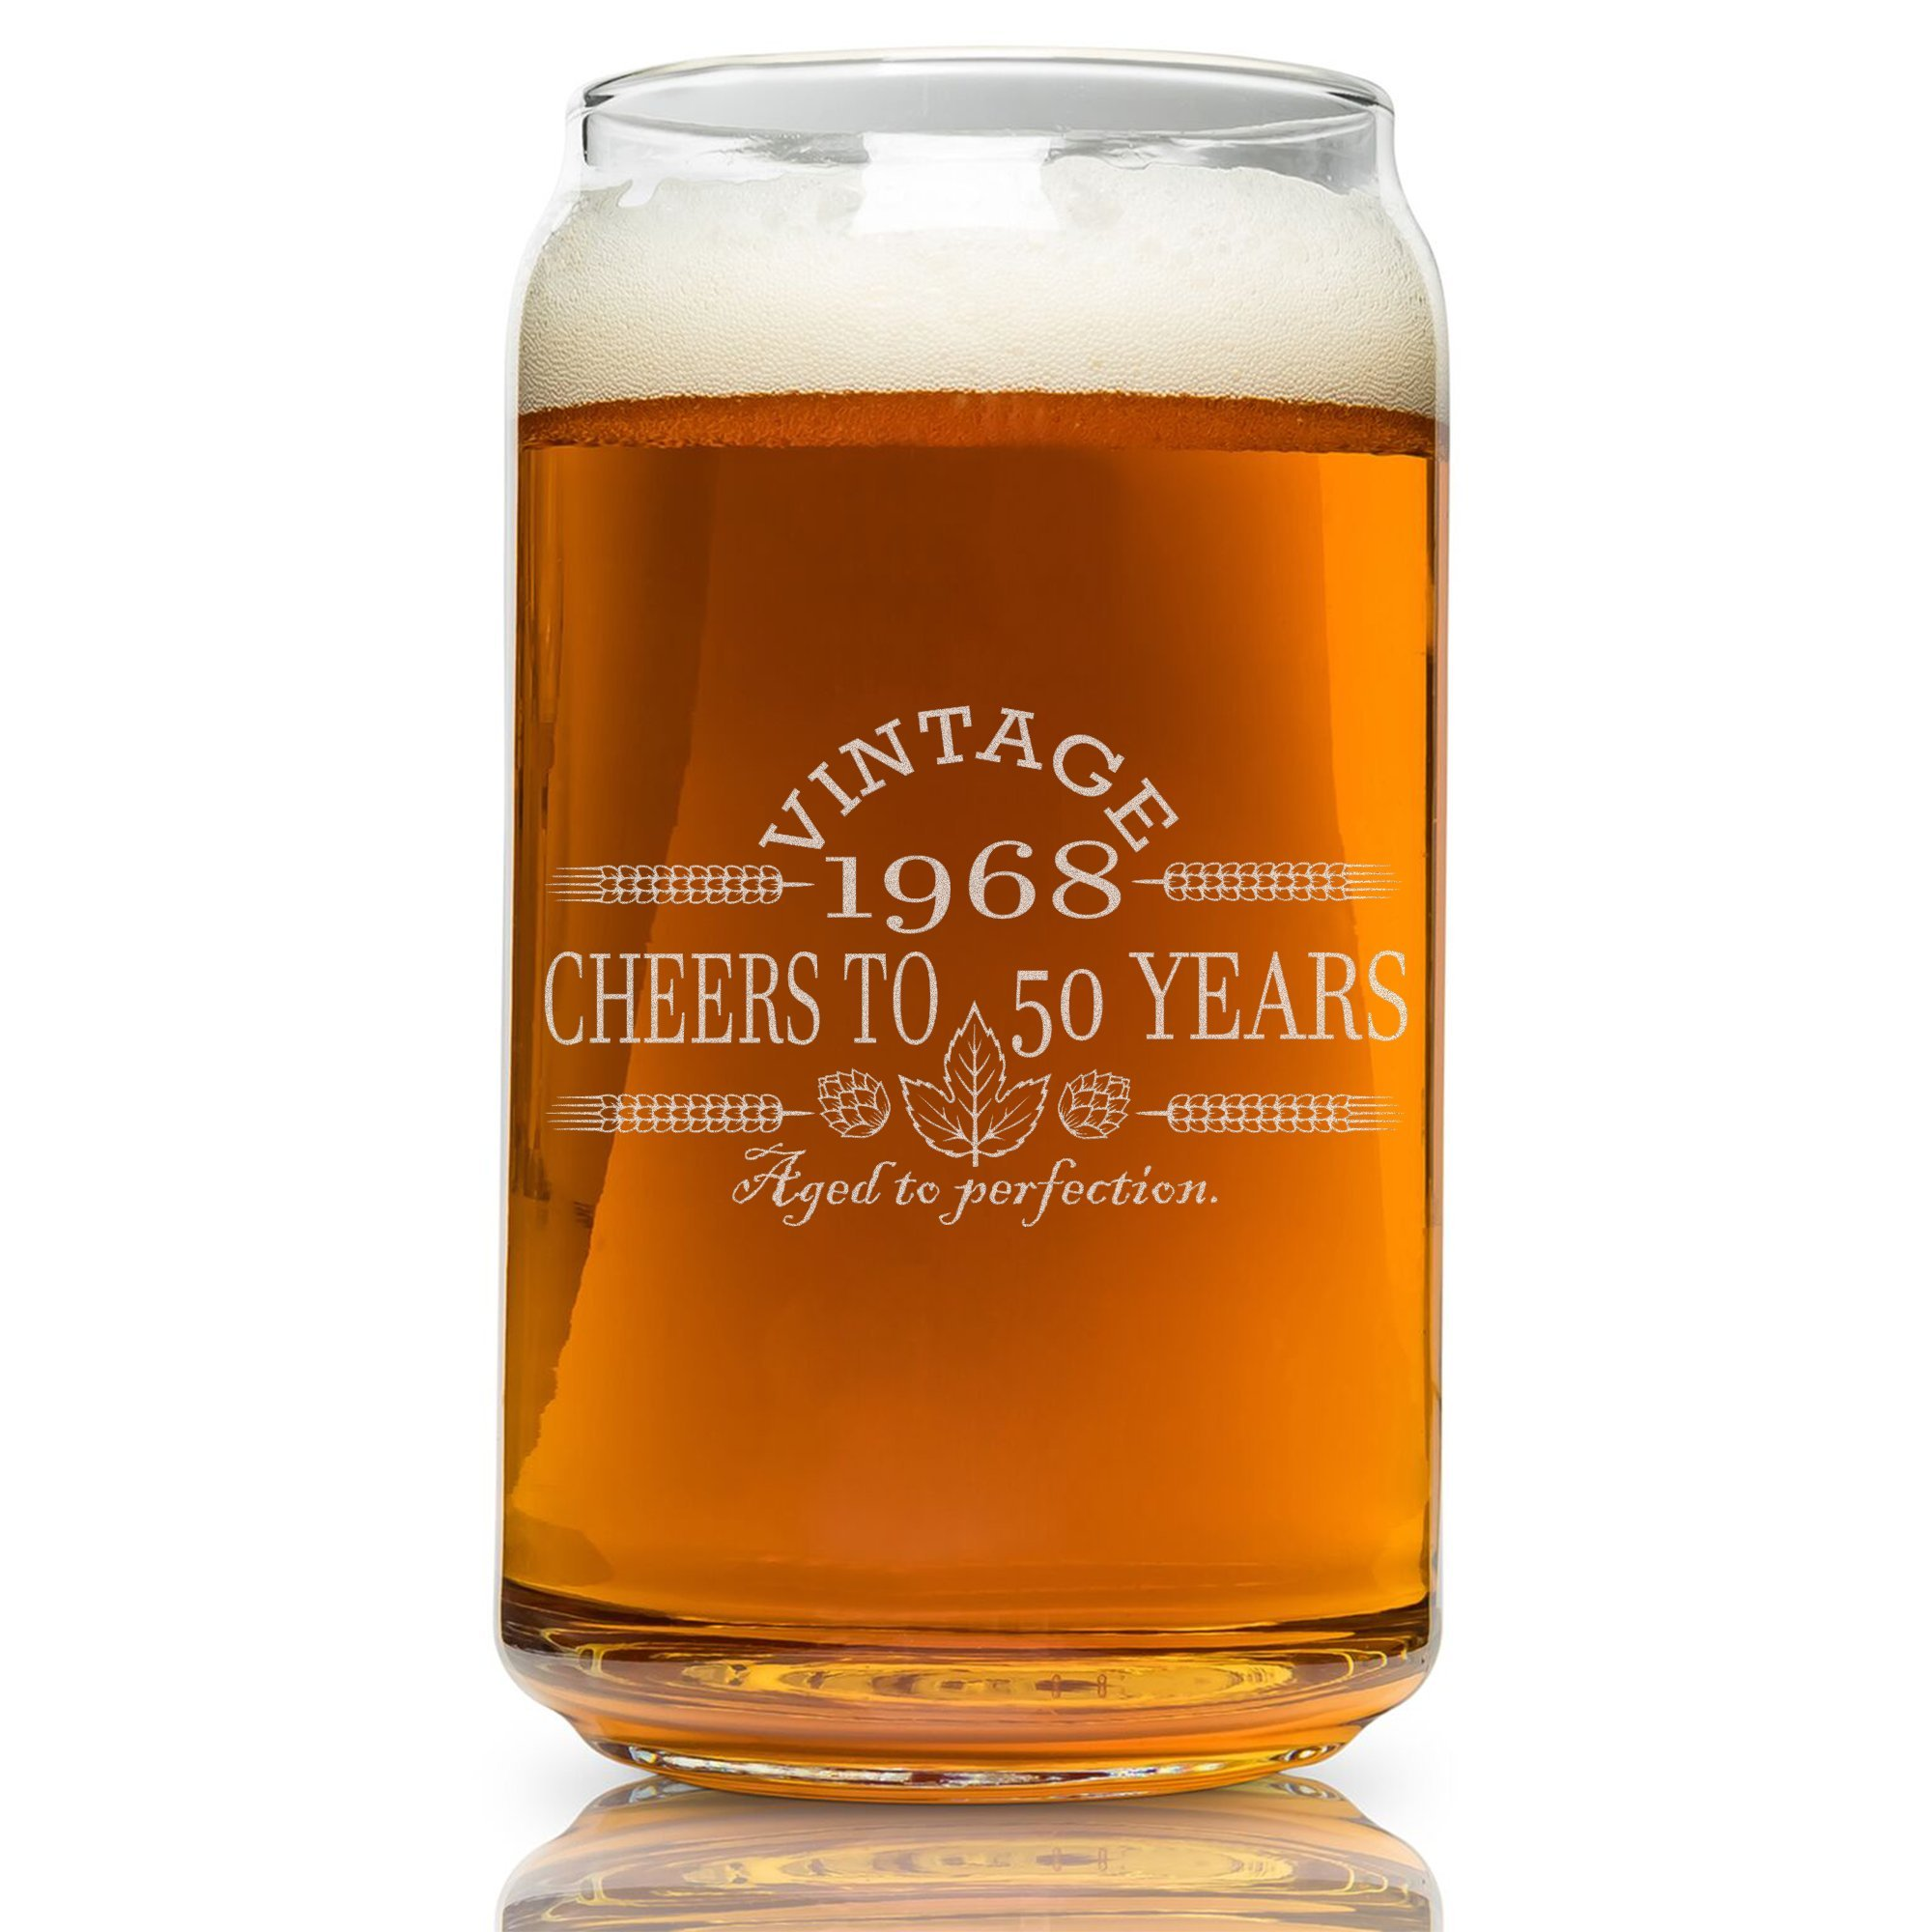 50th Birthday- Vintage 1968 Beer Can Glass- Engraved-Vintage-Cheers-Aged To Perfection-Birthday Gift-Etched Beer Glass-Barware (50)